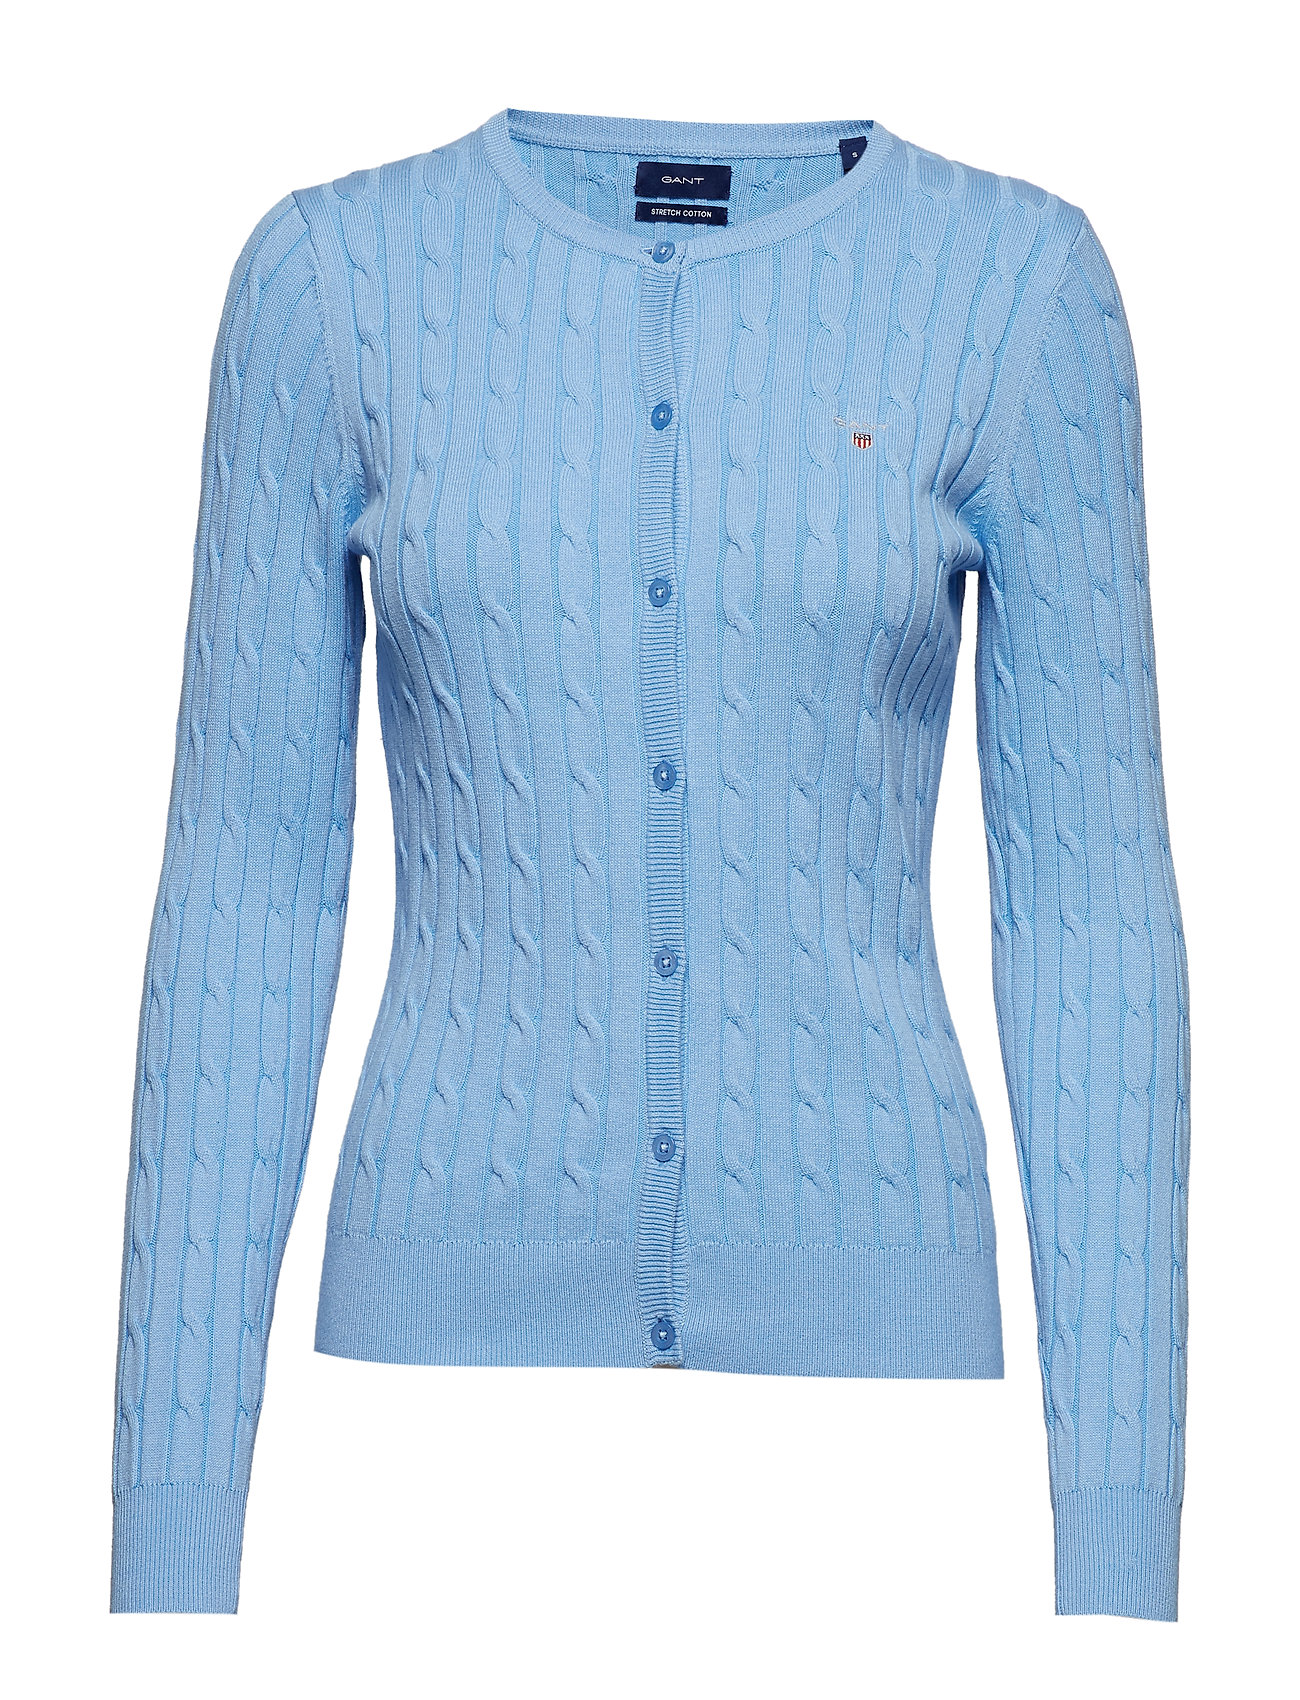 Gant STRETCH COTTON CABLE CREW CARDIGAN - CAPRI BLUE